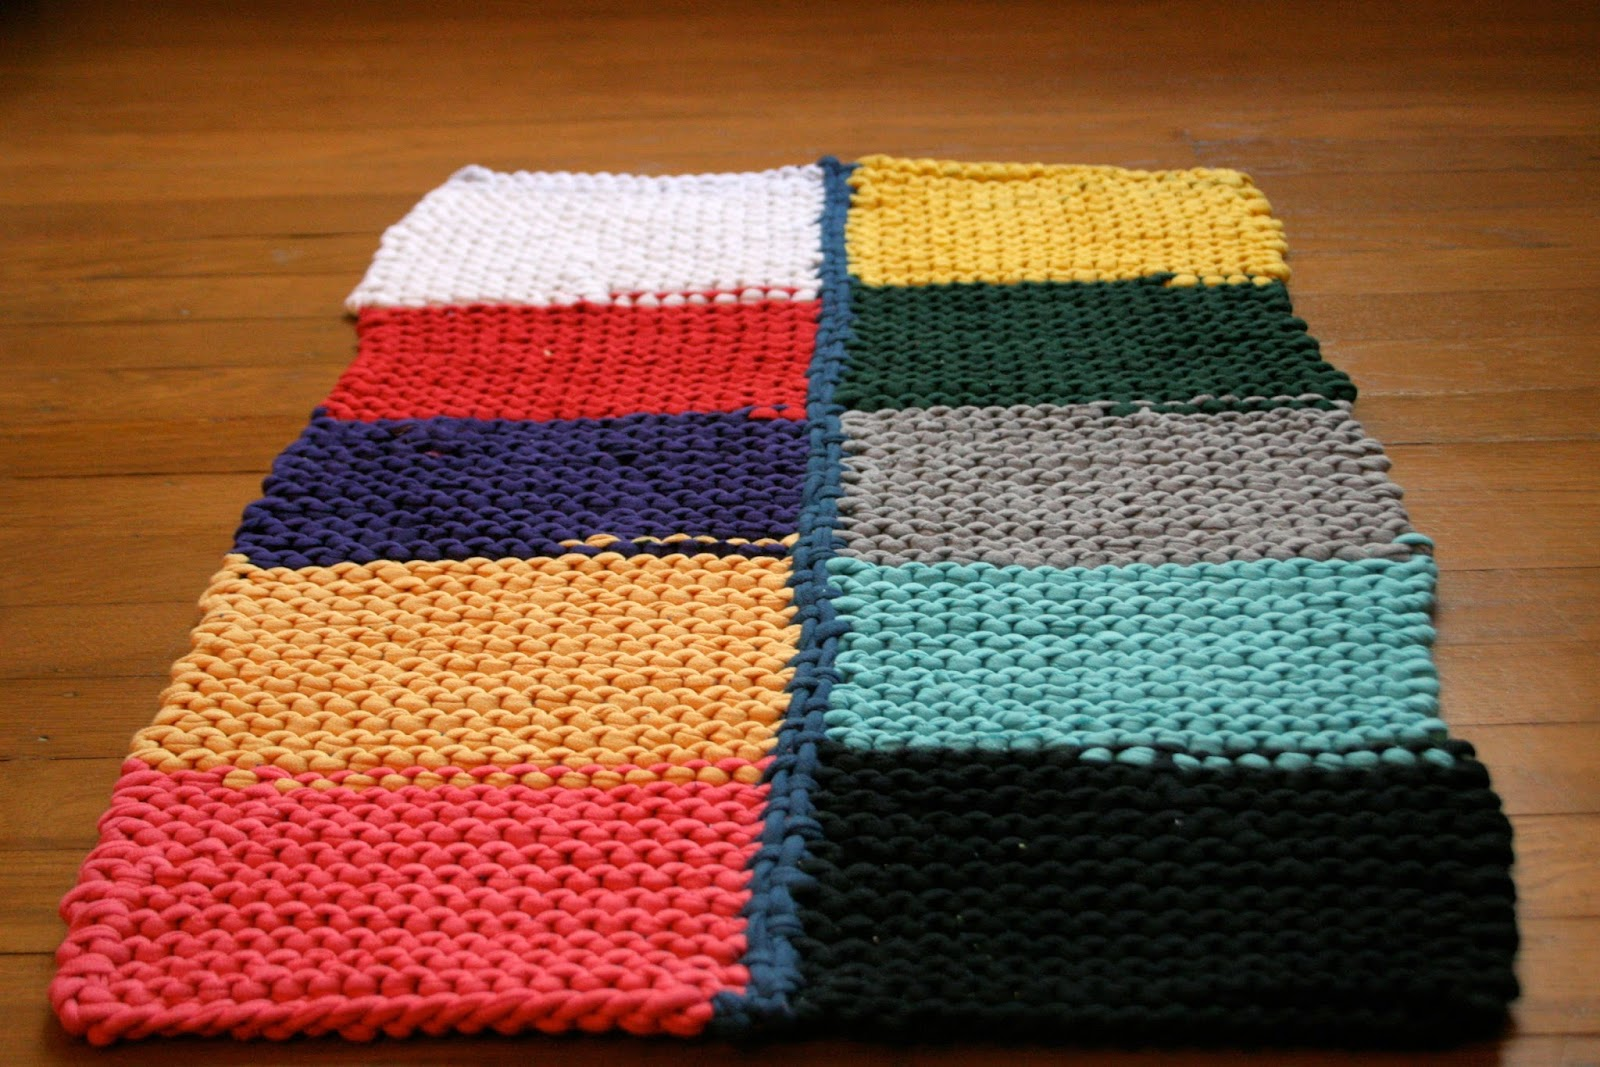 How To Knit A Rug Knitted T Shirt Rug The Surznick Common Room